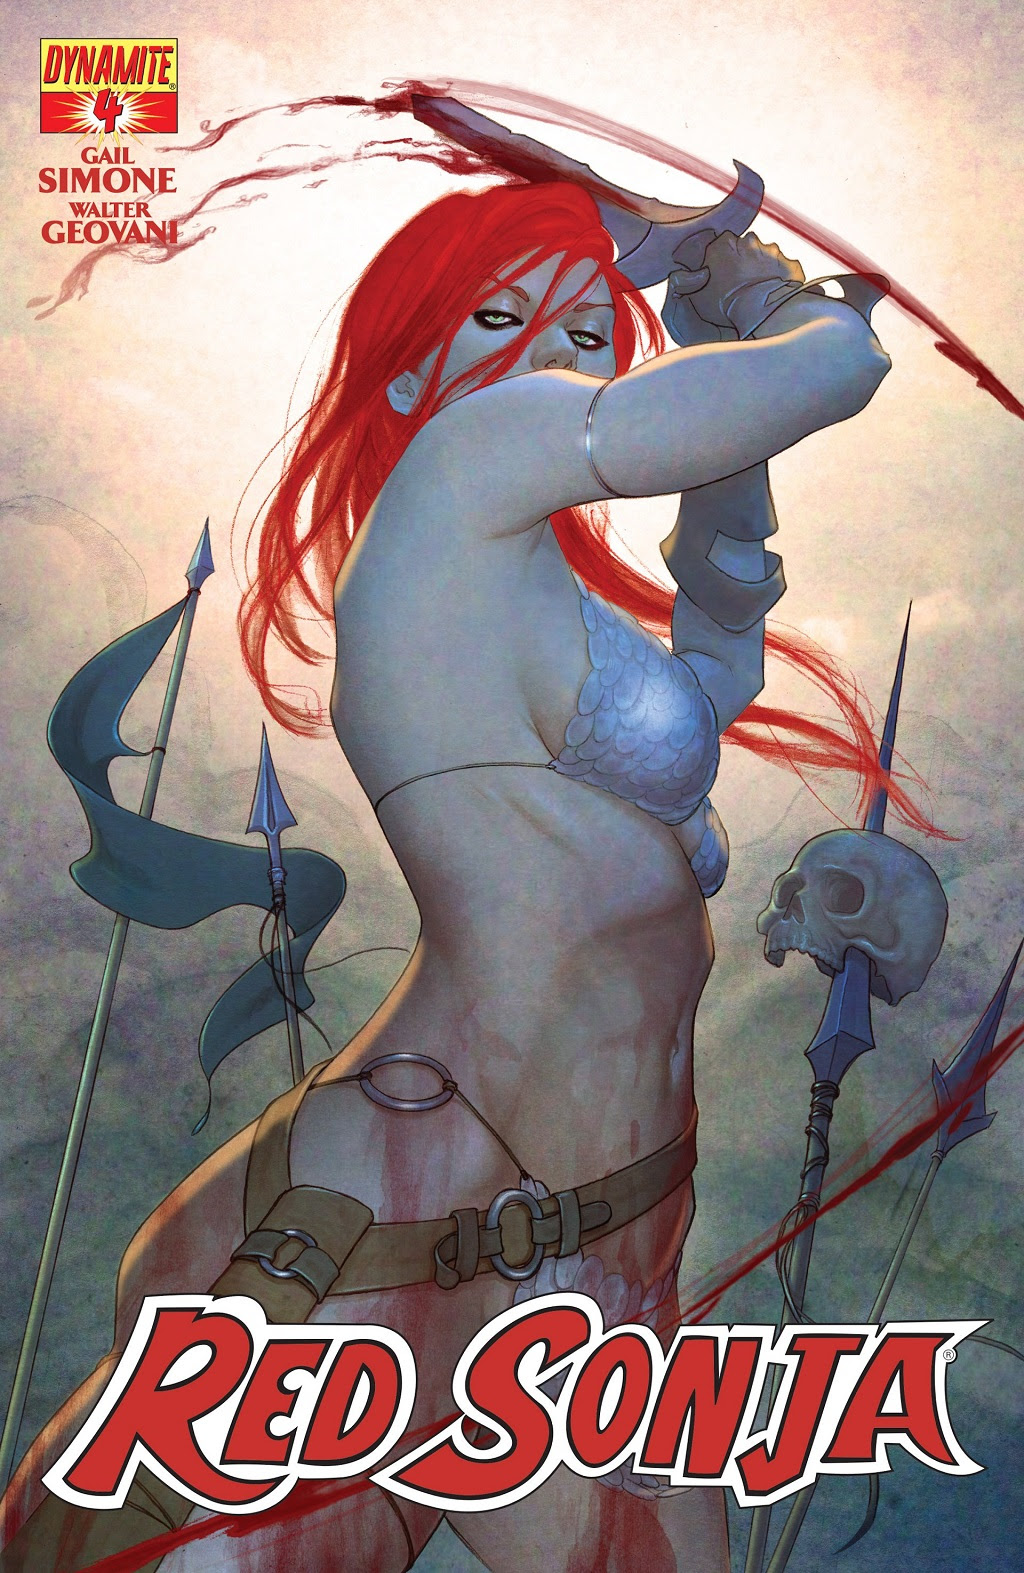 http://sonsofcorax.files.wordpress.com/2013/10/red-sonja-04.jpg